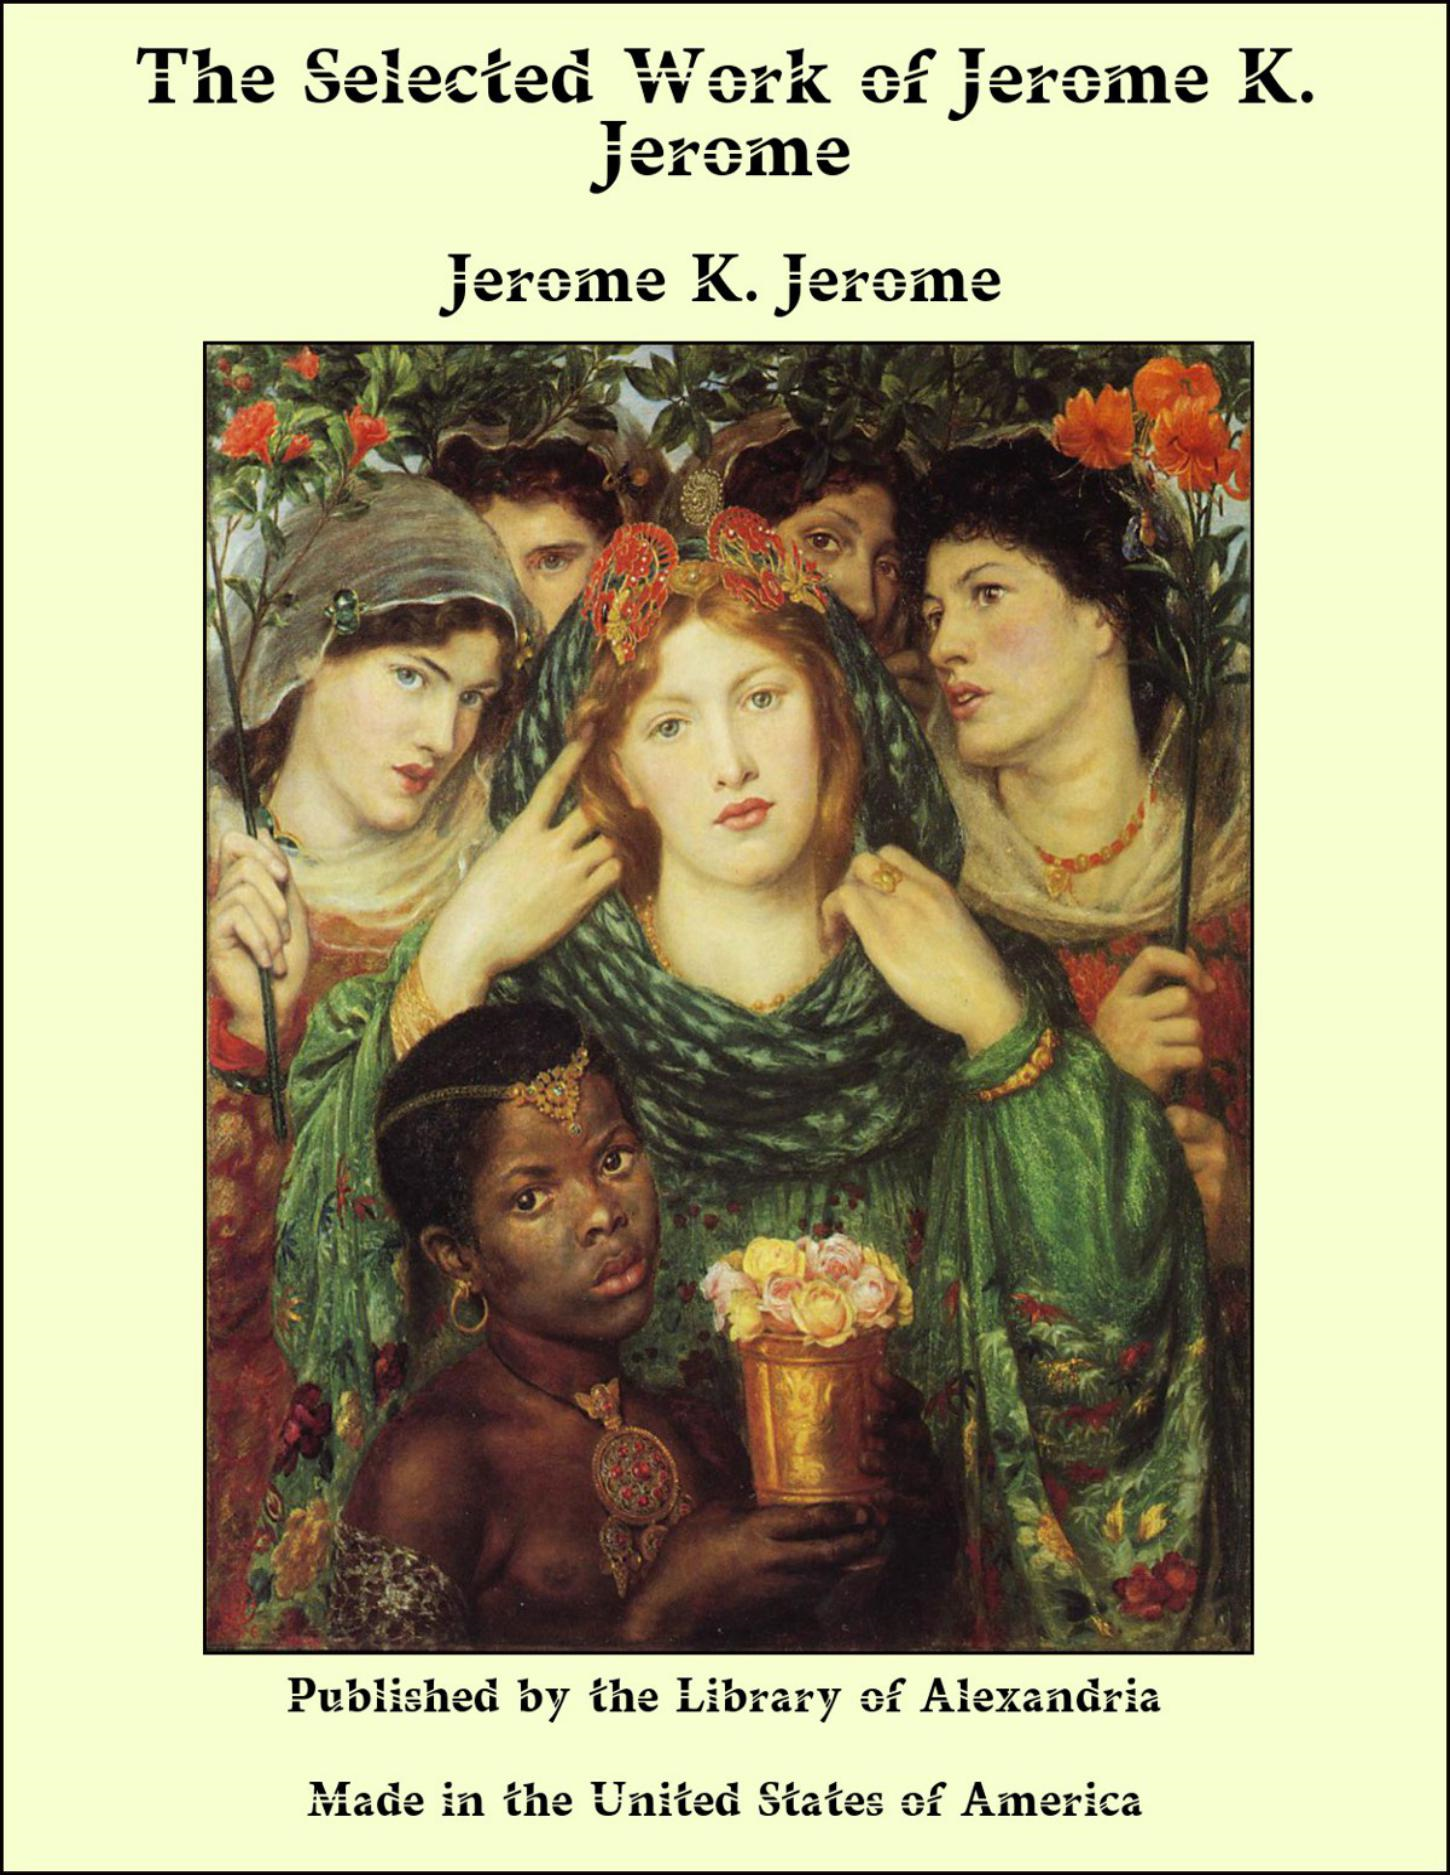 The Selected Work of Jerome K. Jerome by Jerome K. Jerome